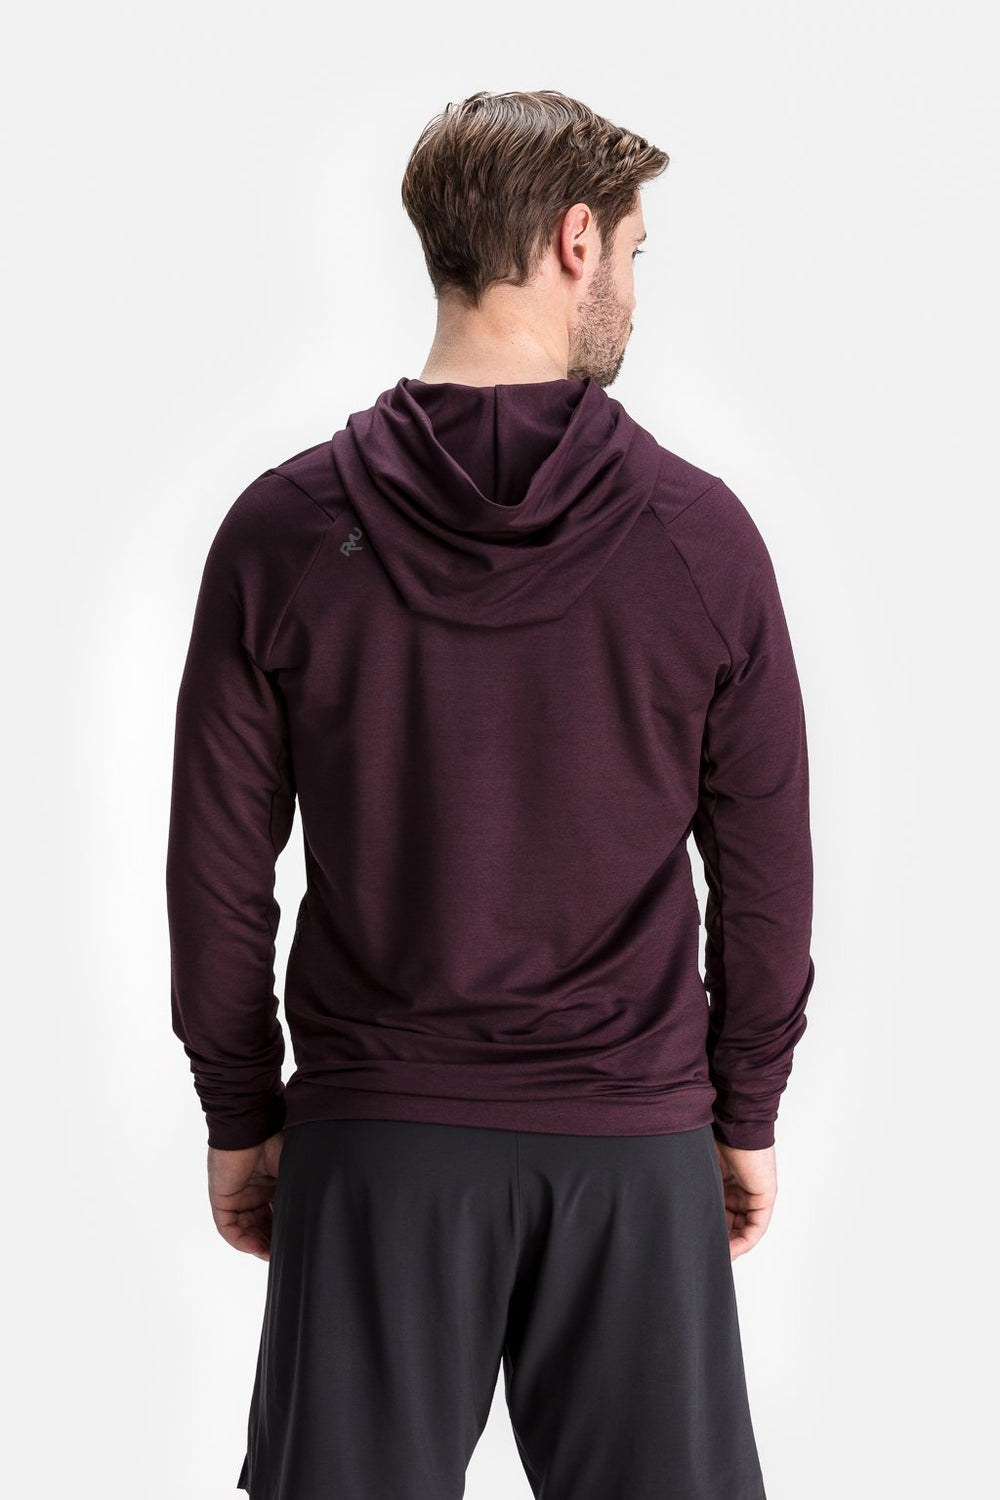 RYU Mens MidLayr Hoodie in Blackened Port